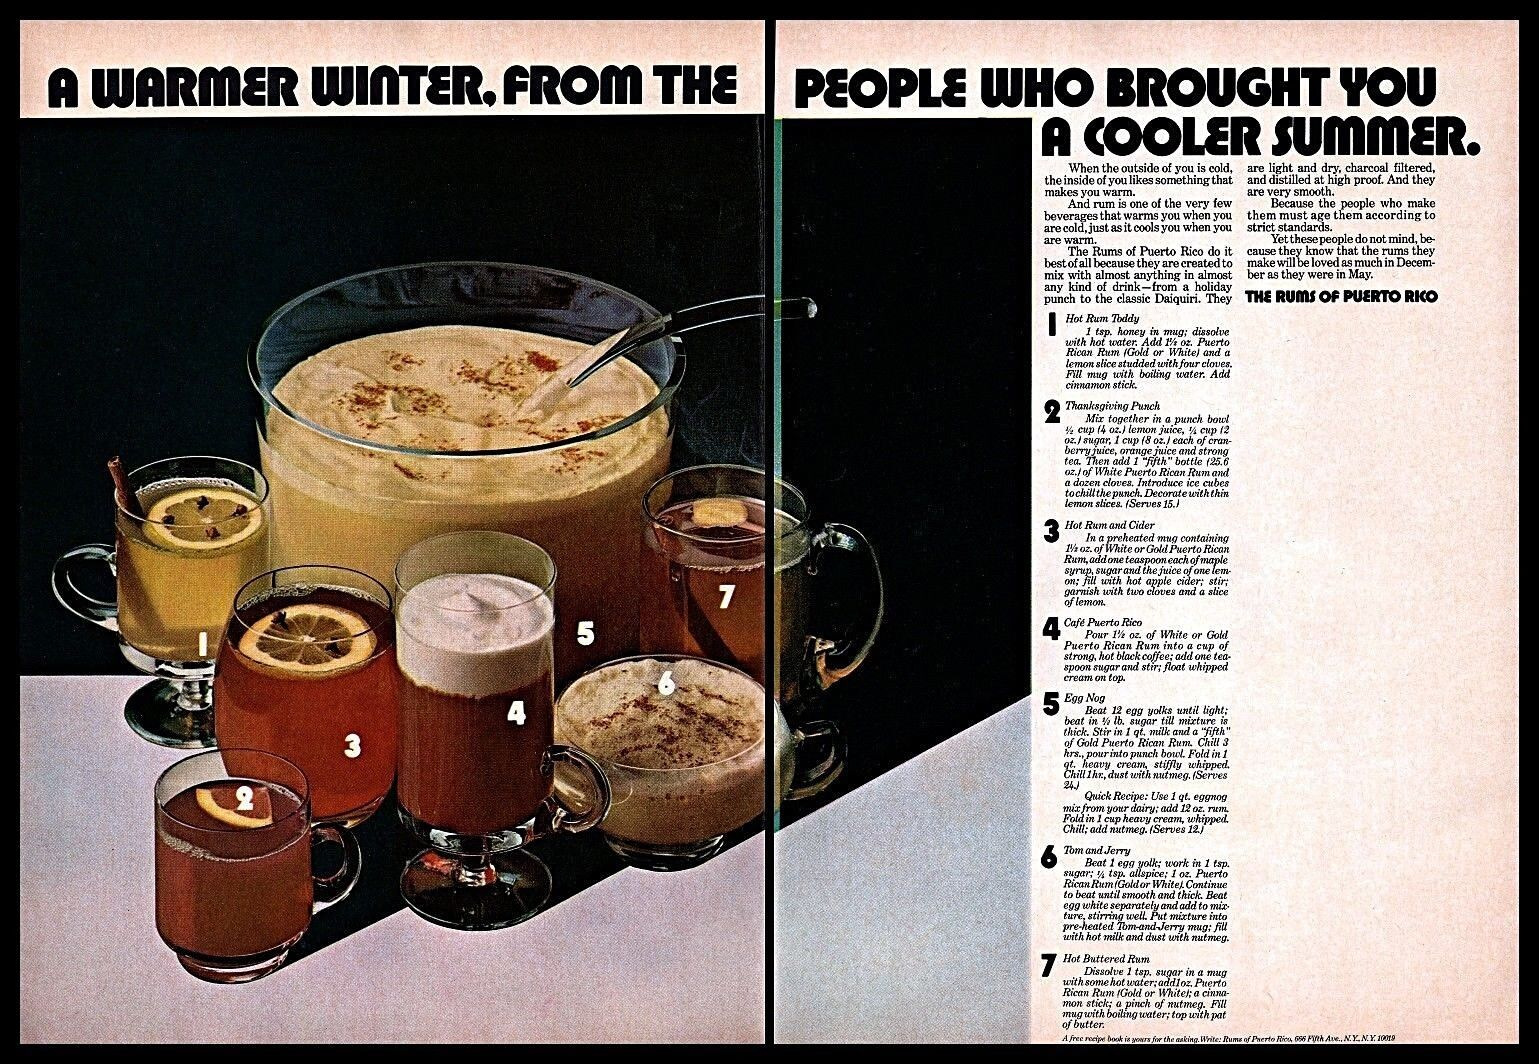 Details about 1970 The Rums of Puerto Rico Warm Winter Drinks Recipes  Vintage 1970s PRINT AD